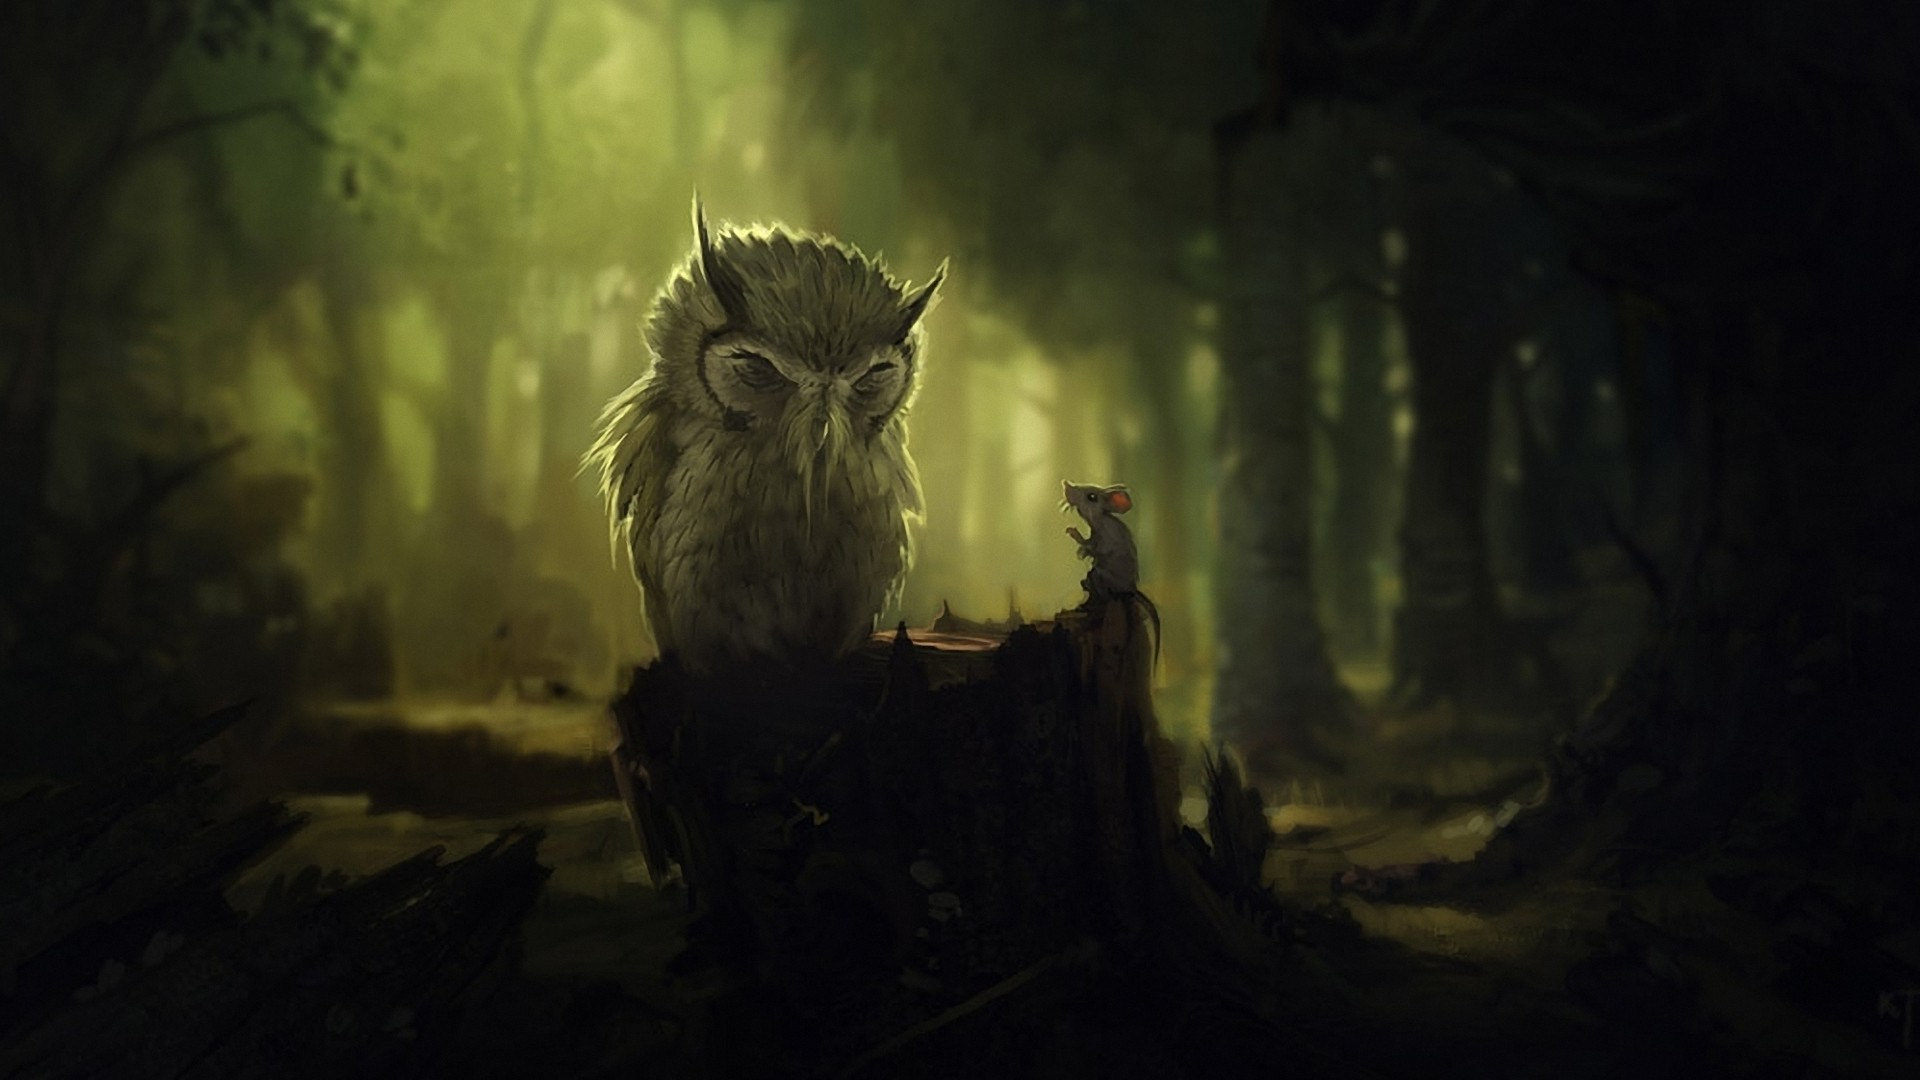 owl wallpaper backgrounds (67+ images)